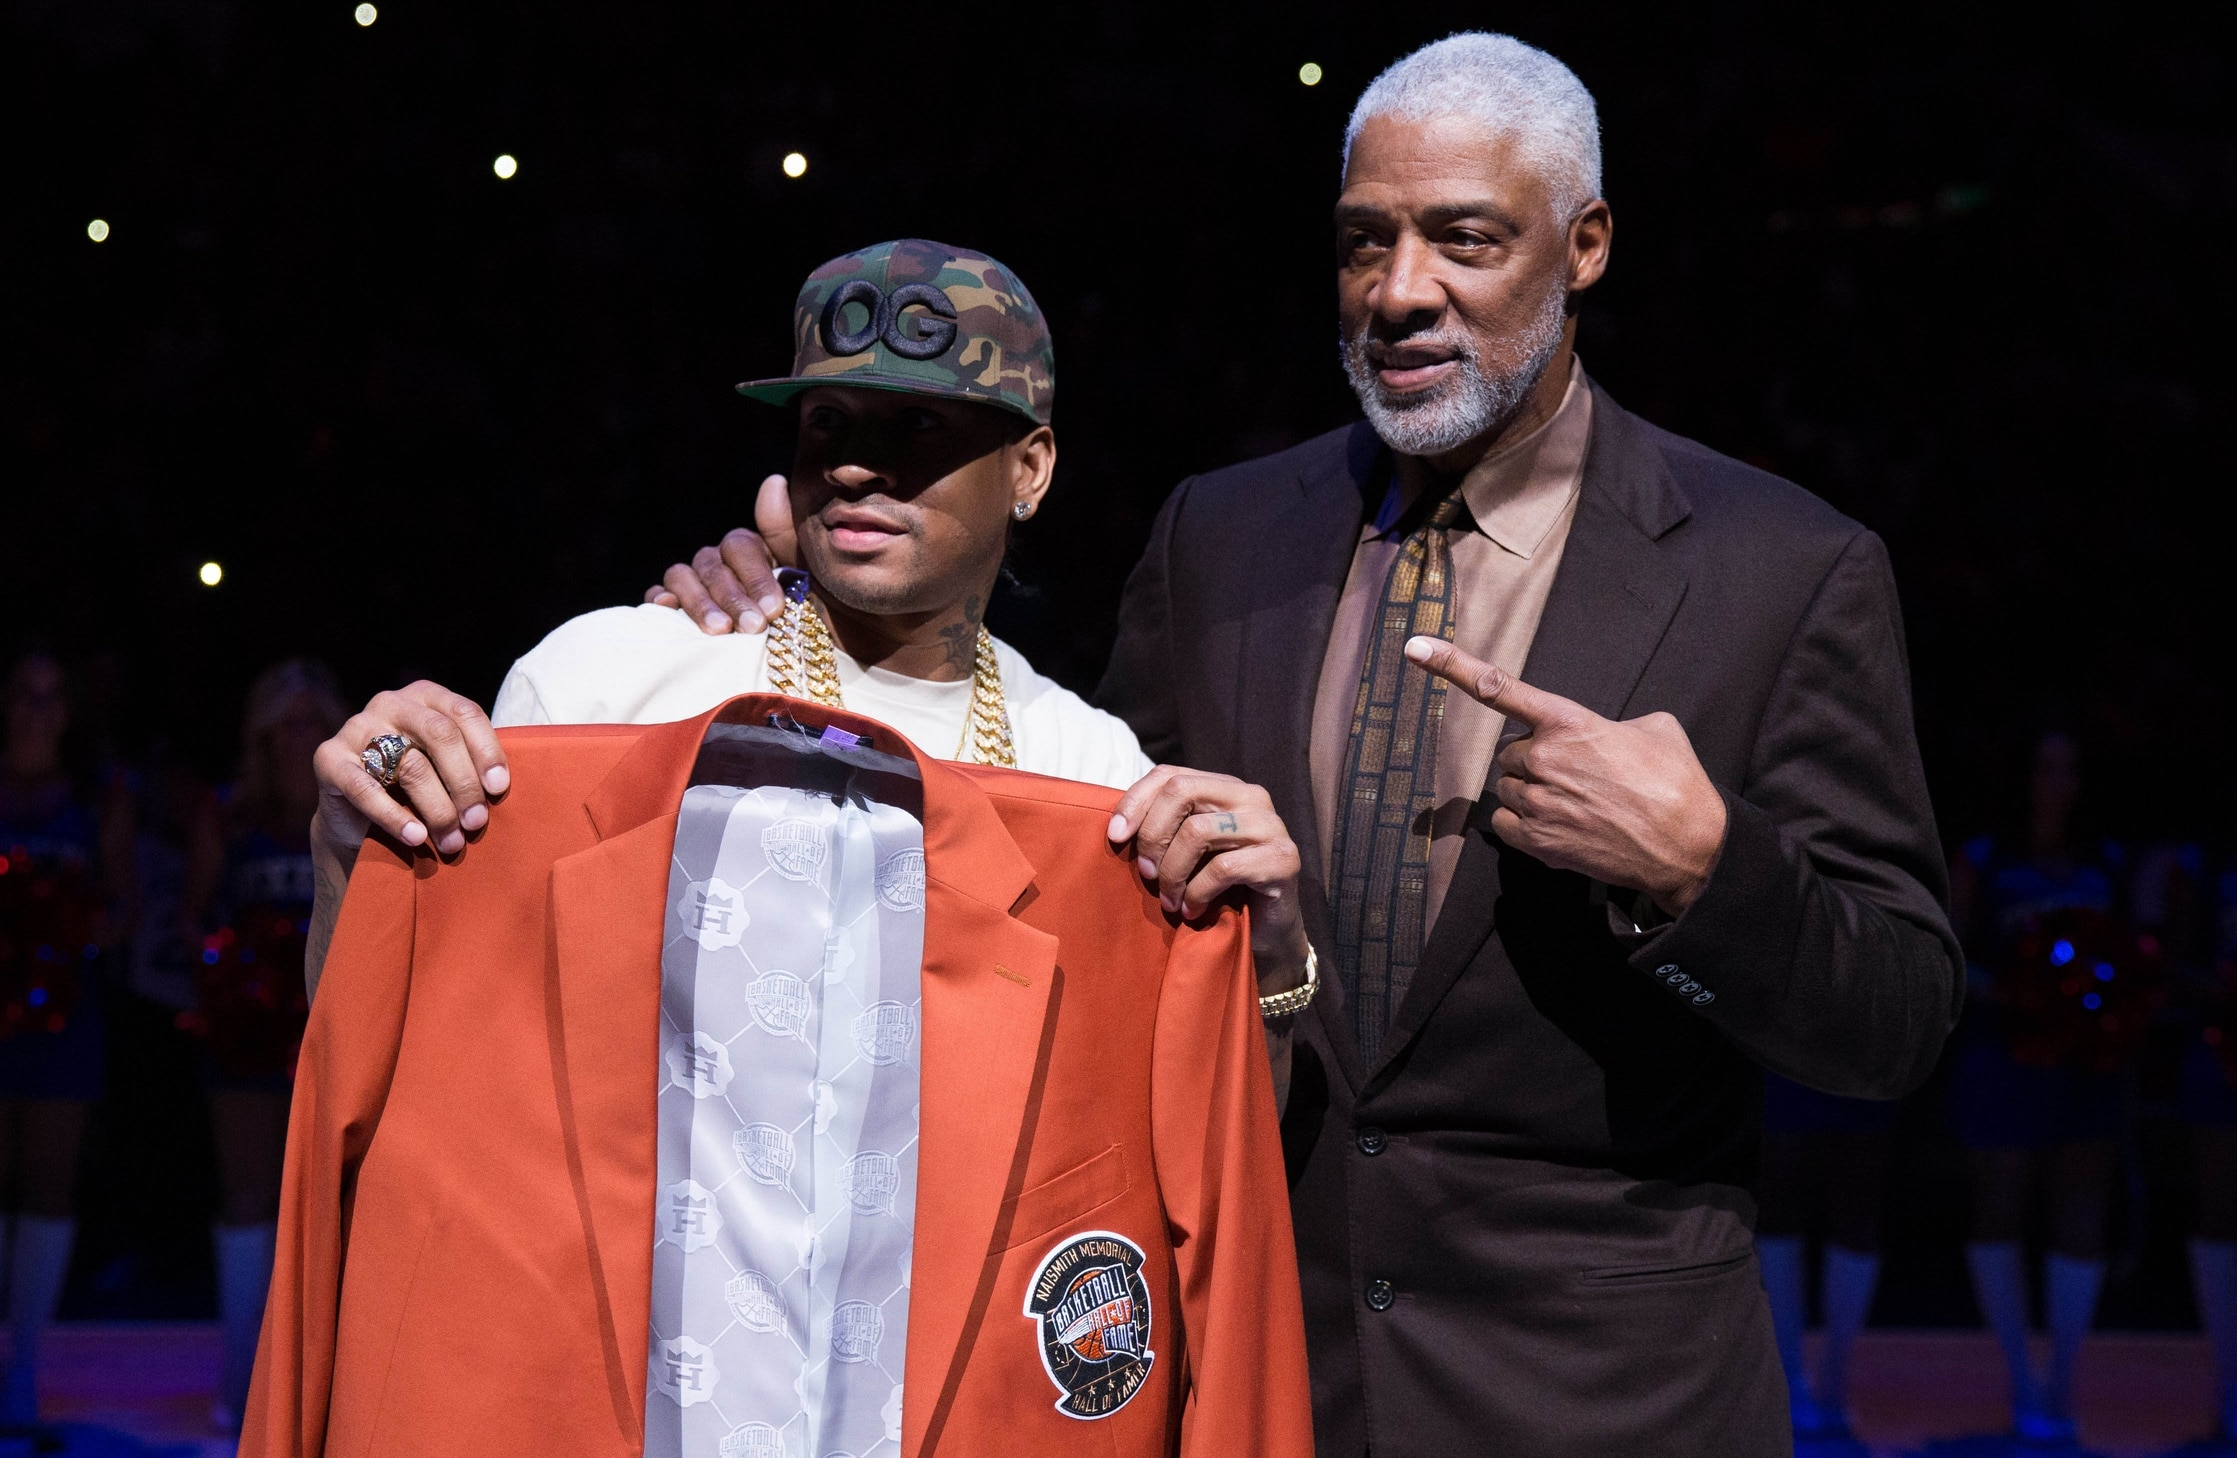 Julius Erving and Allen Iverson are heading up two of the eight teams in the new BIG3 league